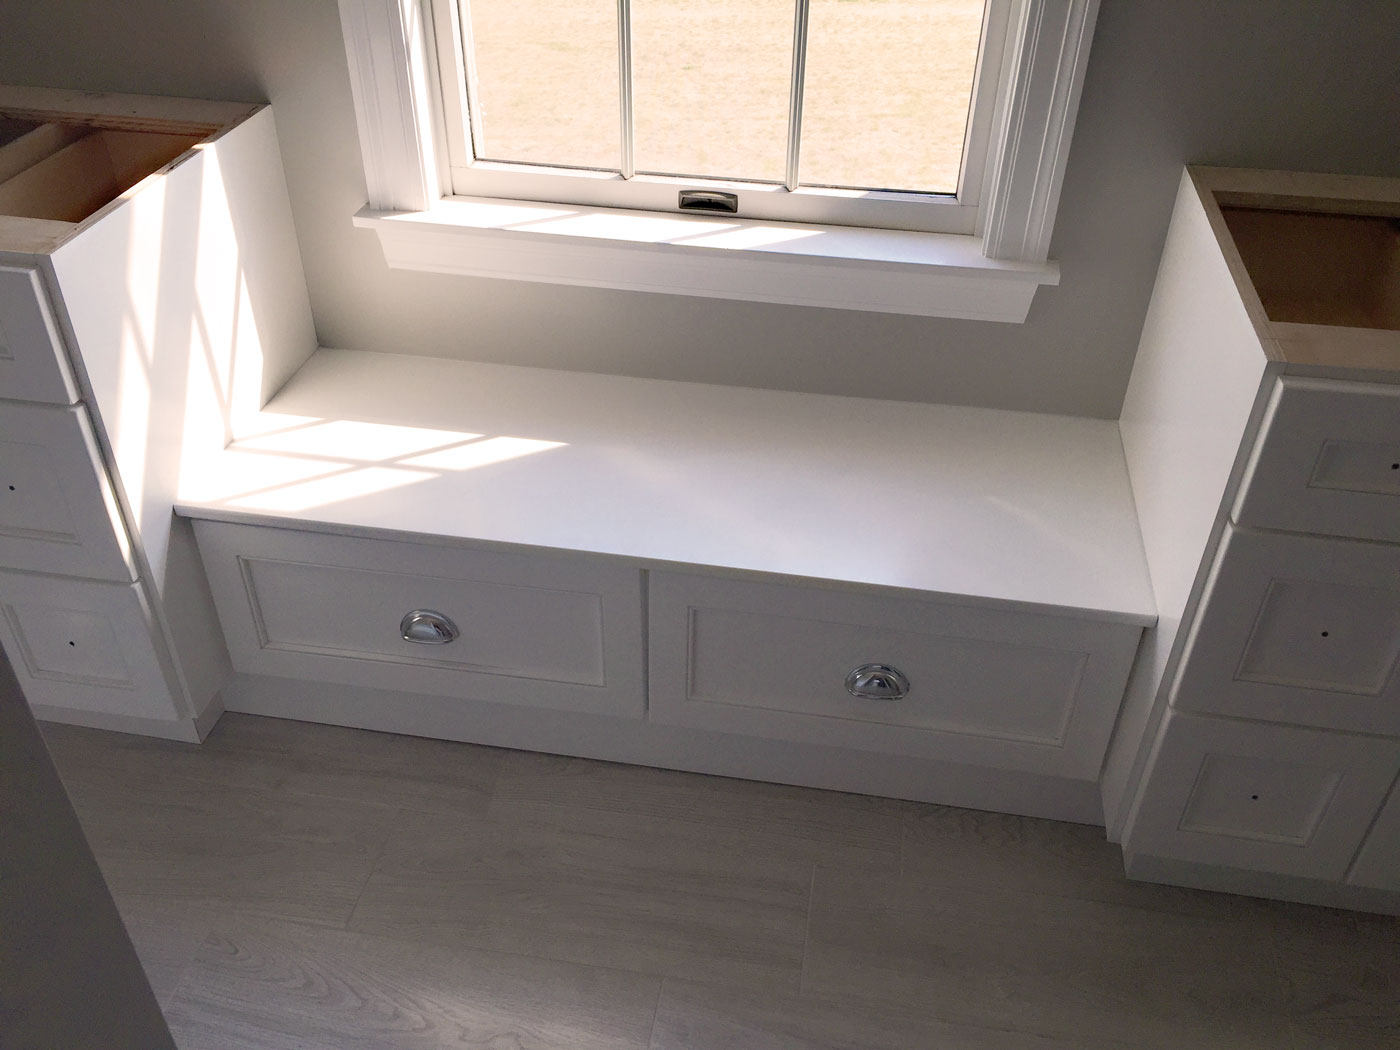 Custom Bathroom Remodel in White - Craftworks Custom Cabinetry - Rochester, NY